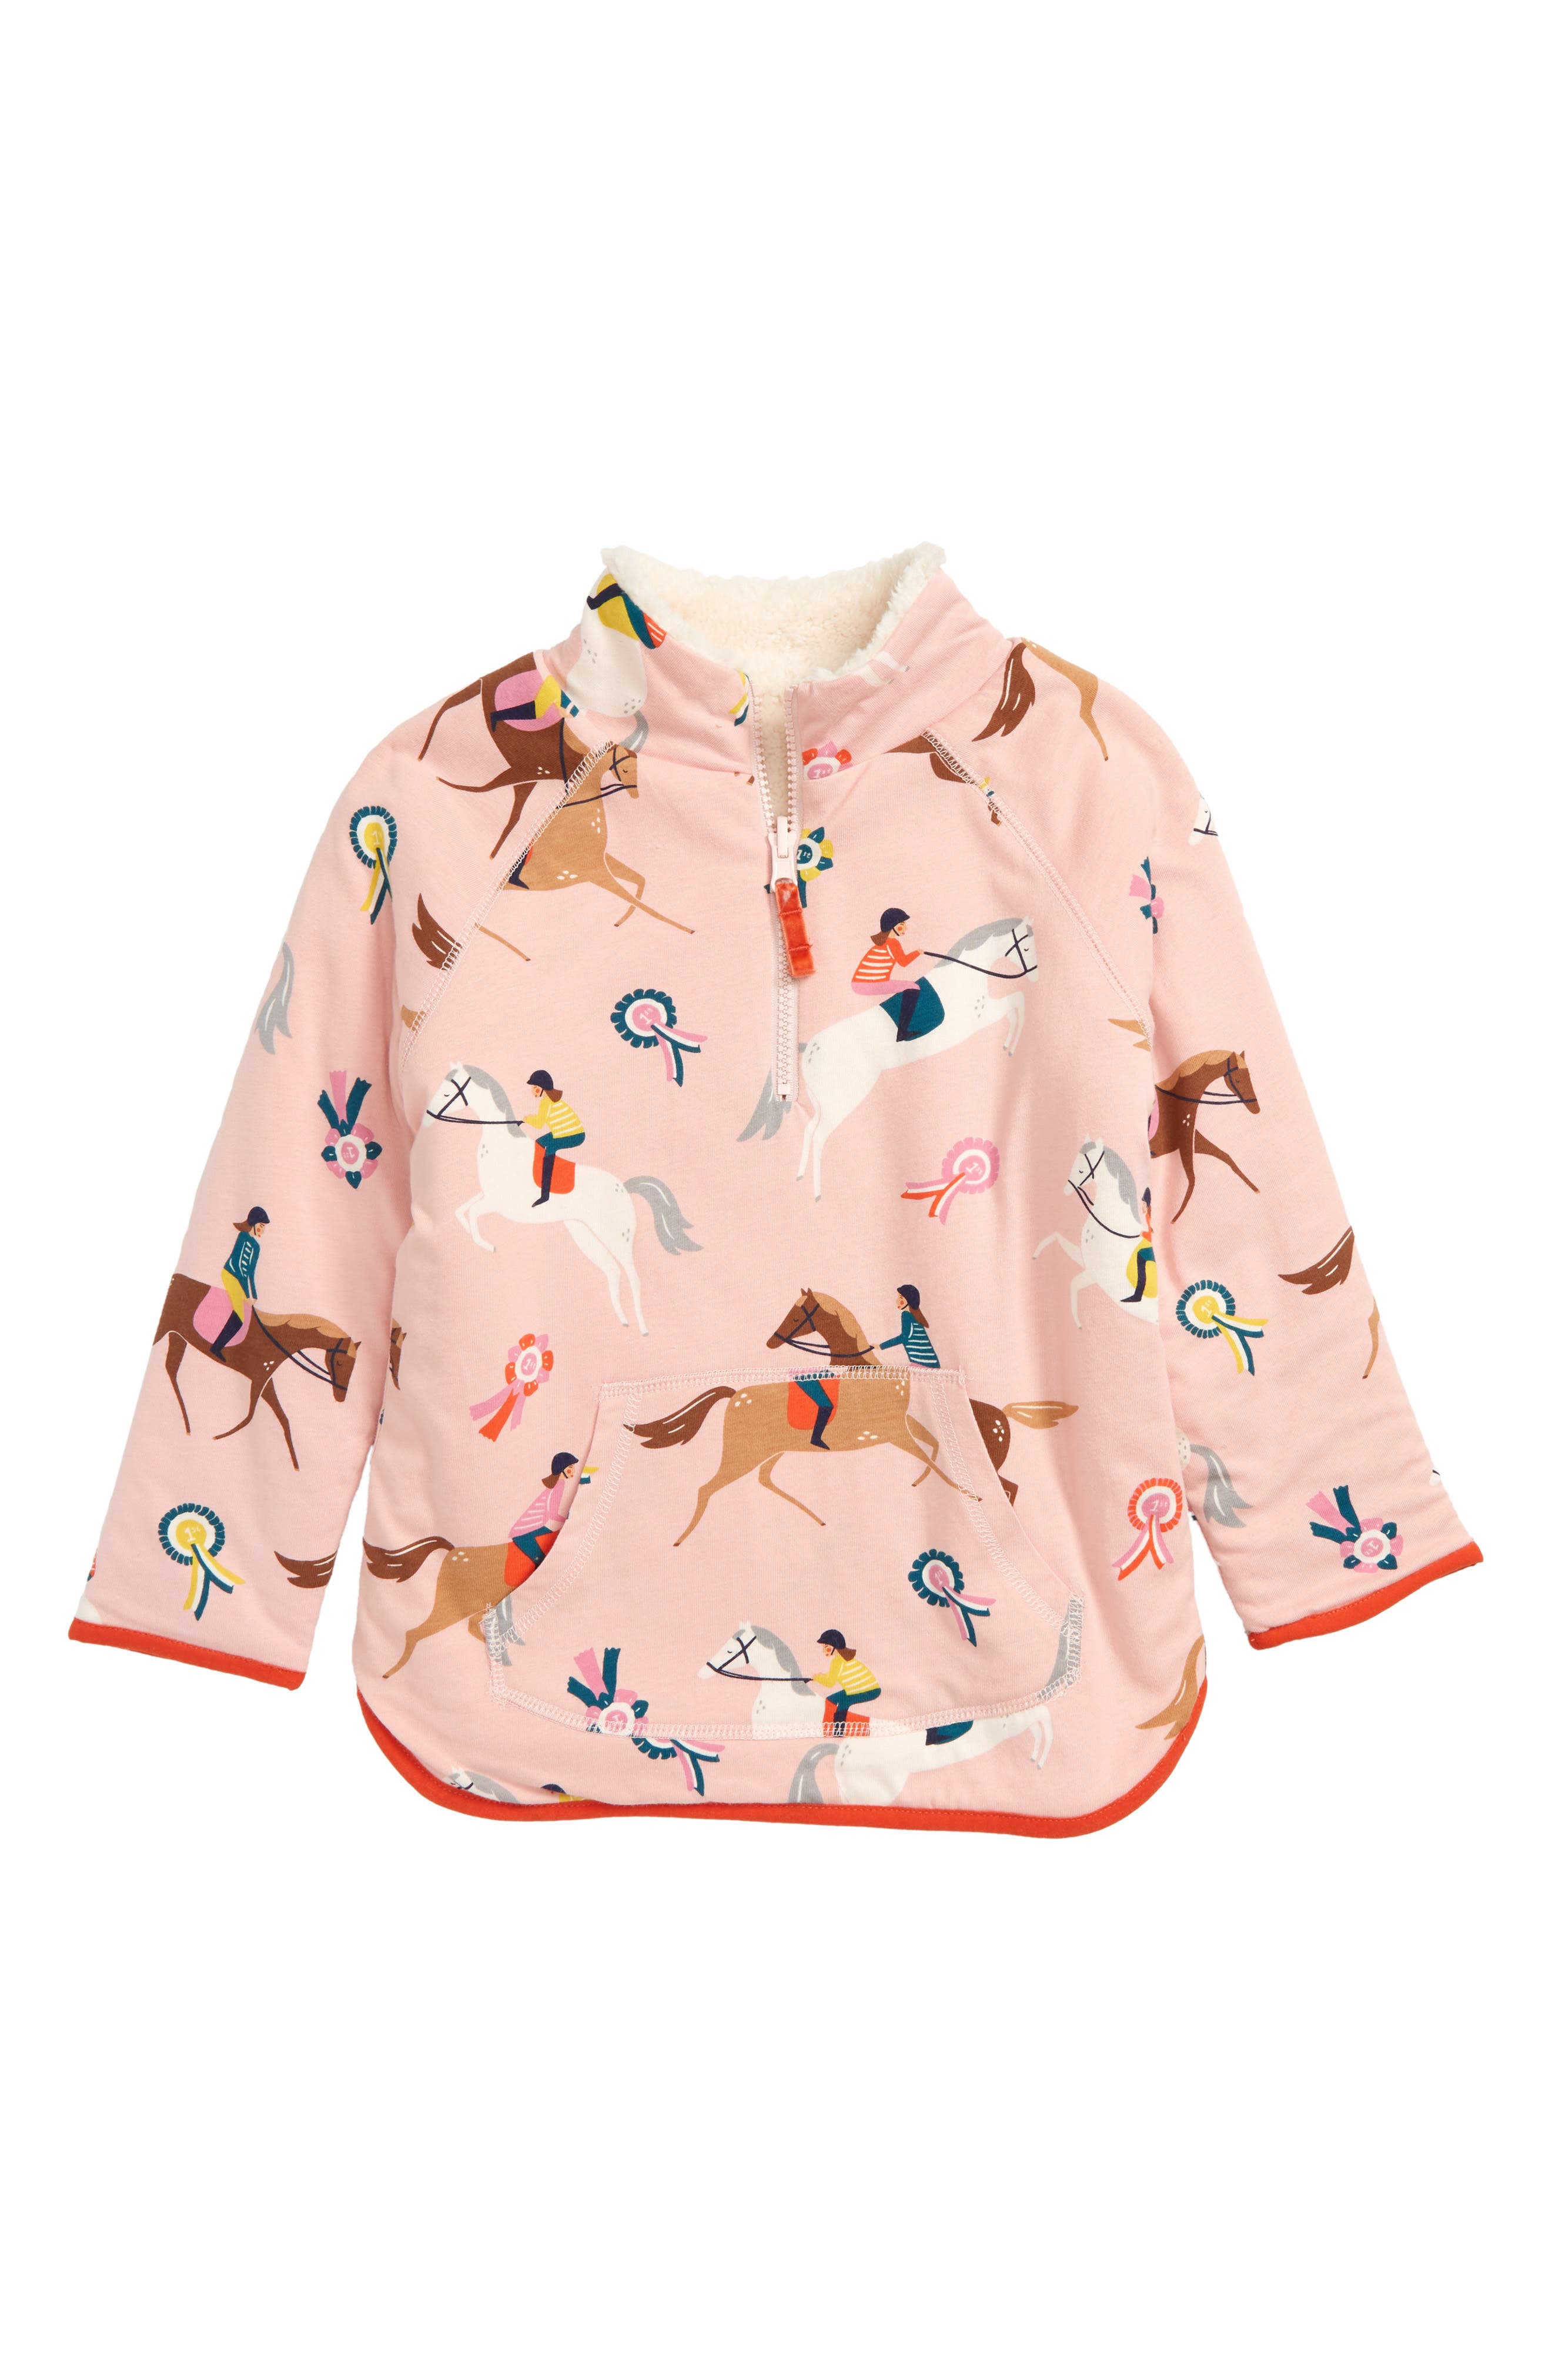 Teddy Half Zip Pullover,                             Main thumbnail 1, color,                             PROVENCE DUSTY PINK PONIES